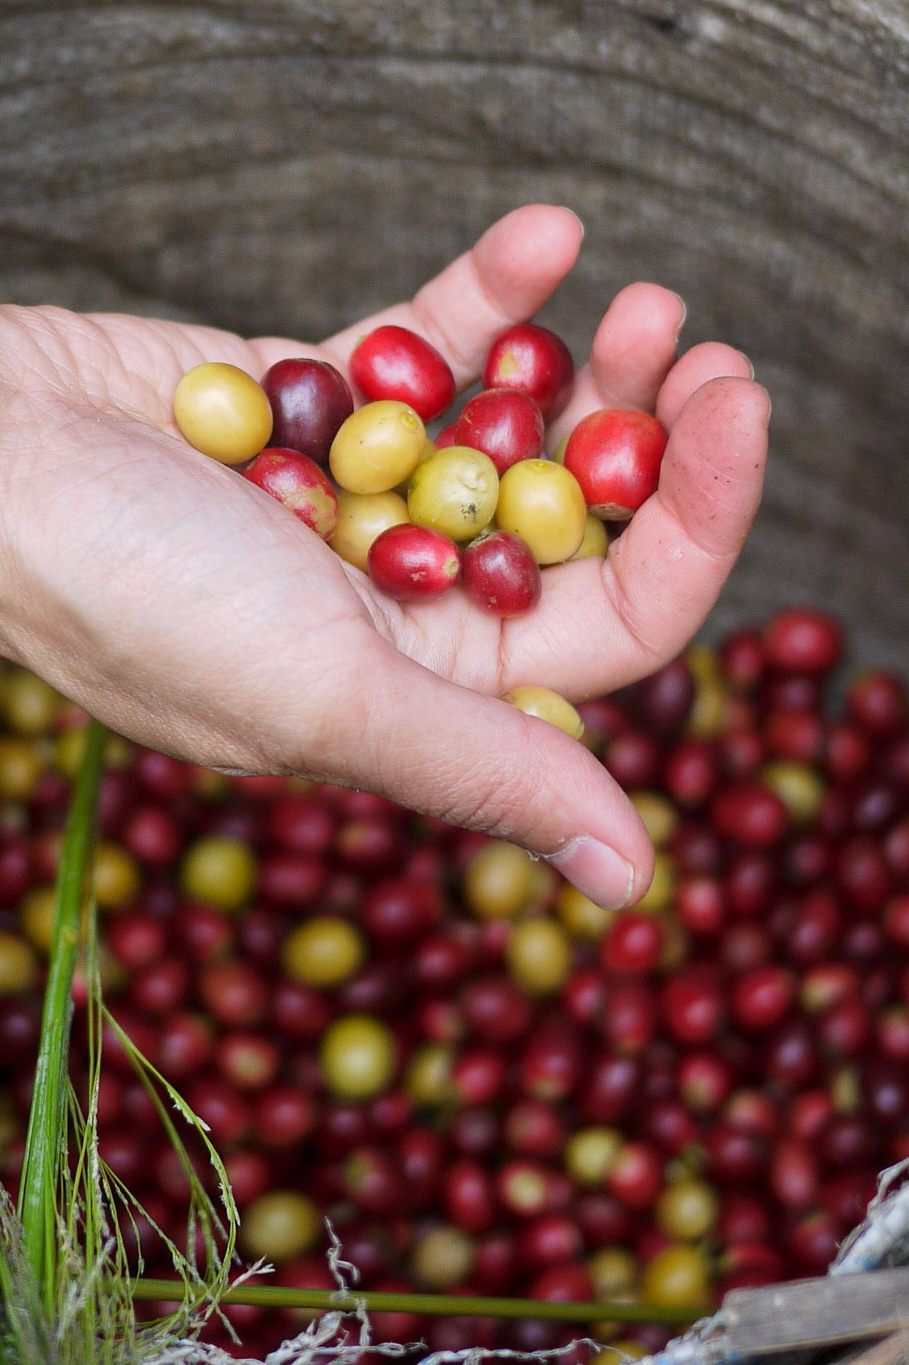 A basket full of ripe coffee cherries, Akha Ama coffee village near Chiang Mai, Thailand.